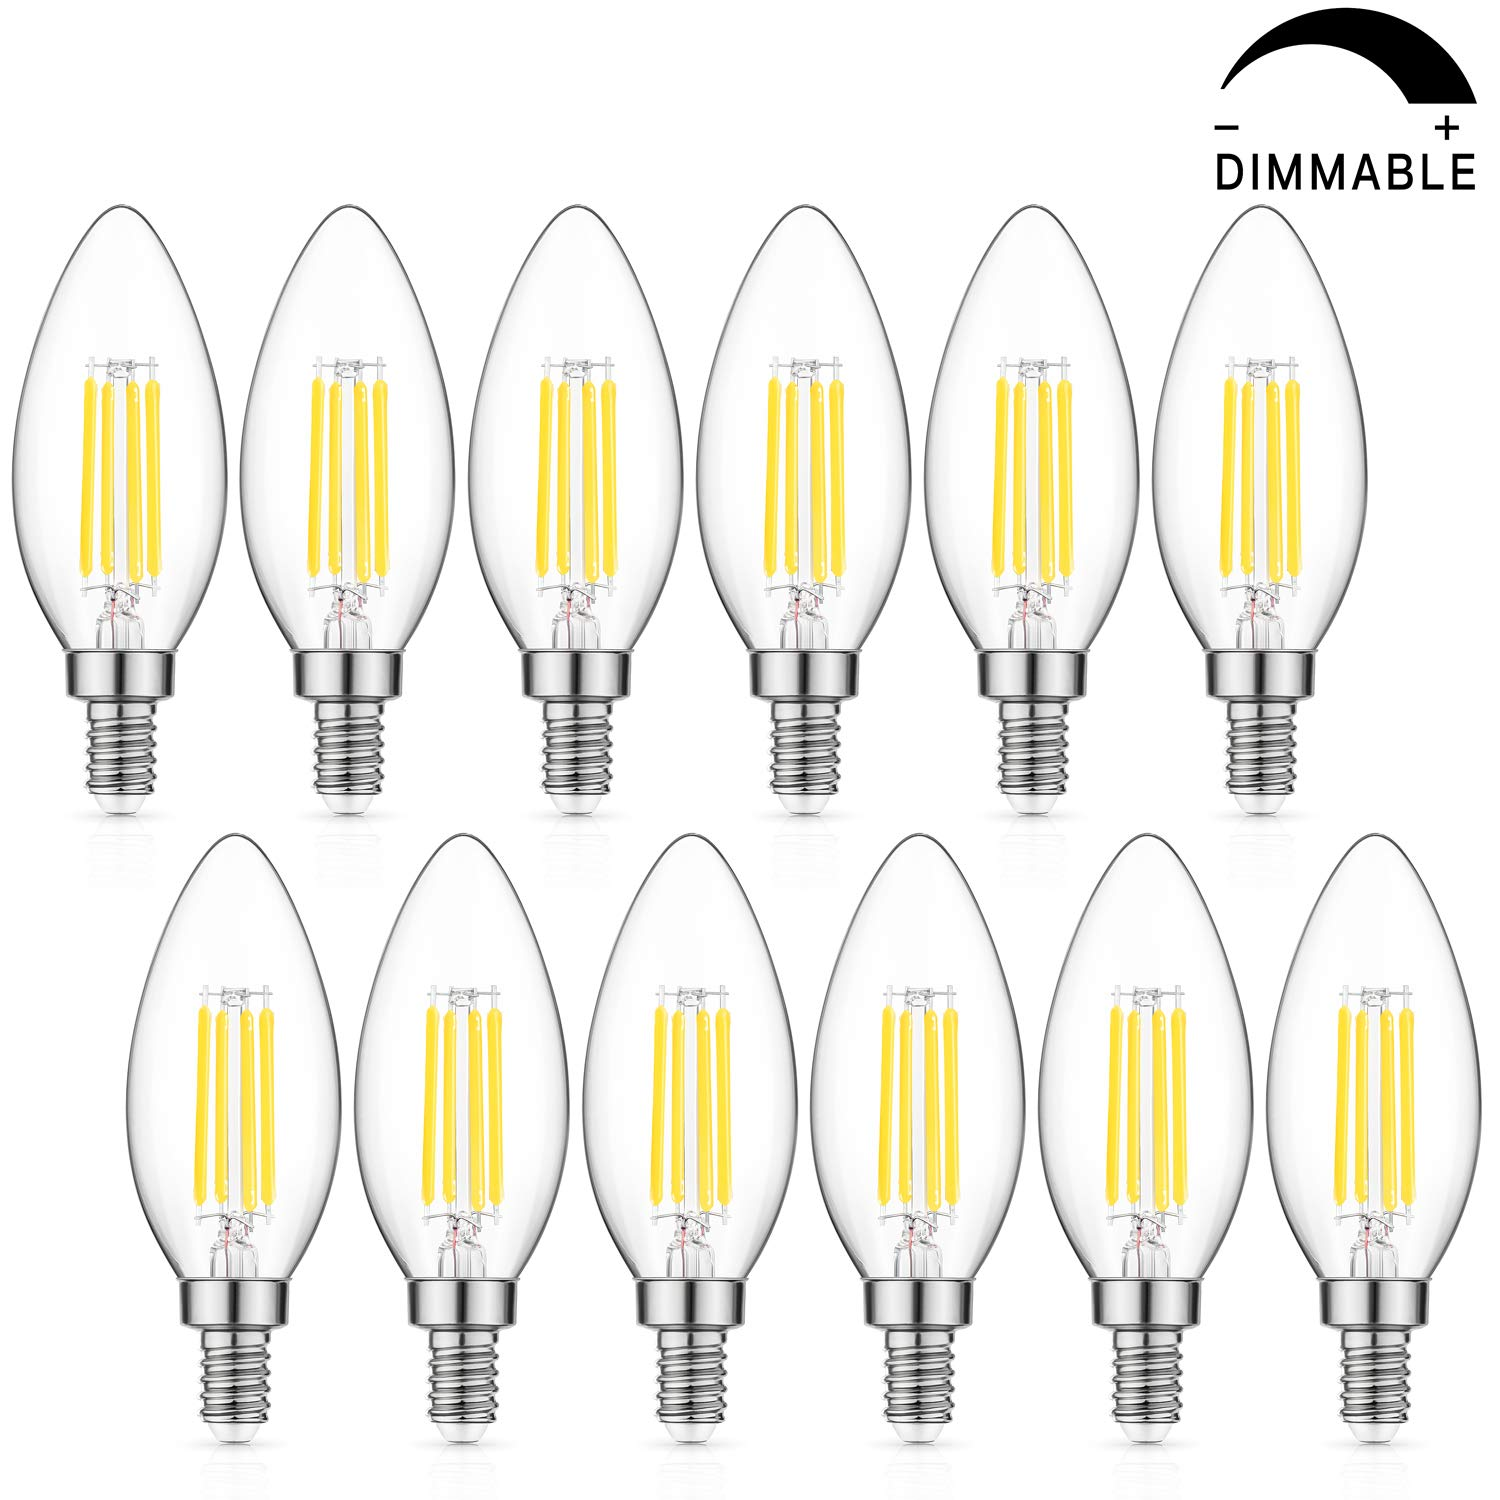 Dimmable LED Candelabra Bulb 60W Equivalent, 5000K Daylight White, 6W Chandelier LED Filament Light Bulbs 600Lumens, E12 Base, B11 Decorative Candle Bulb Pack of 12 by MAXvolador (Image #1)